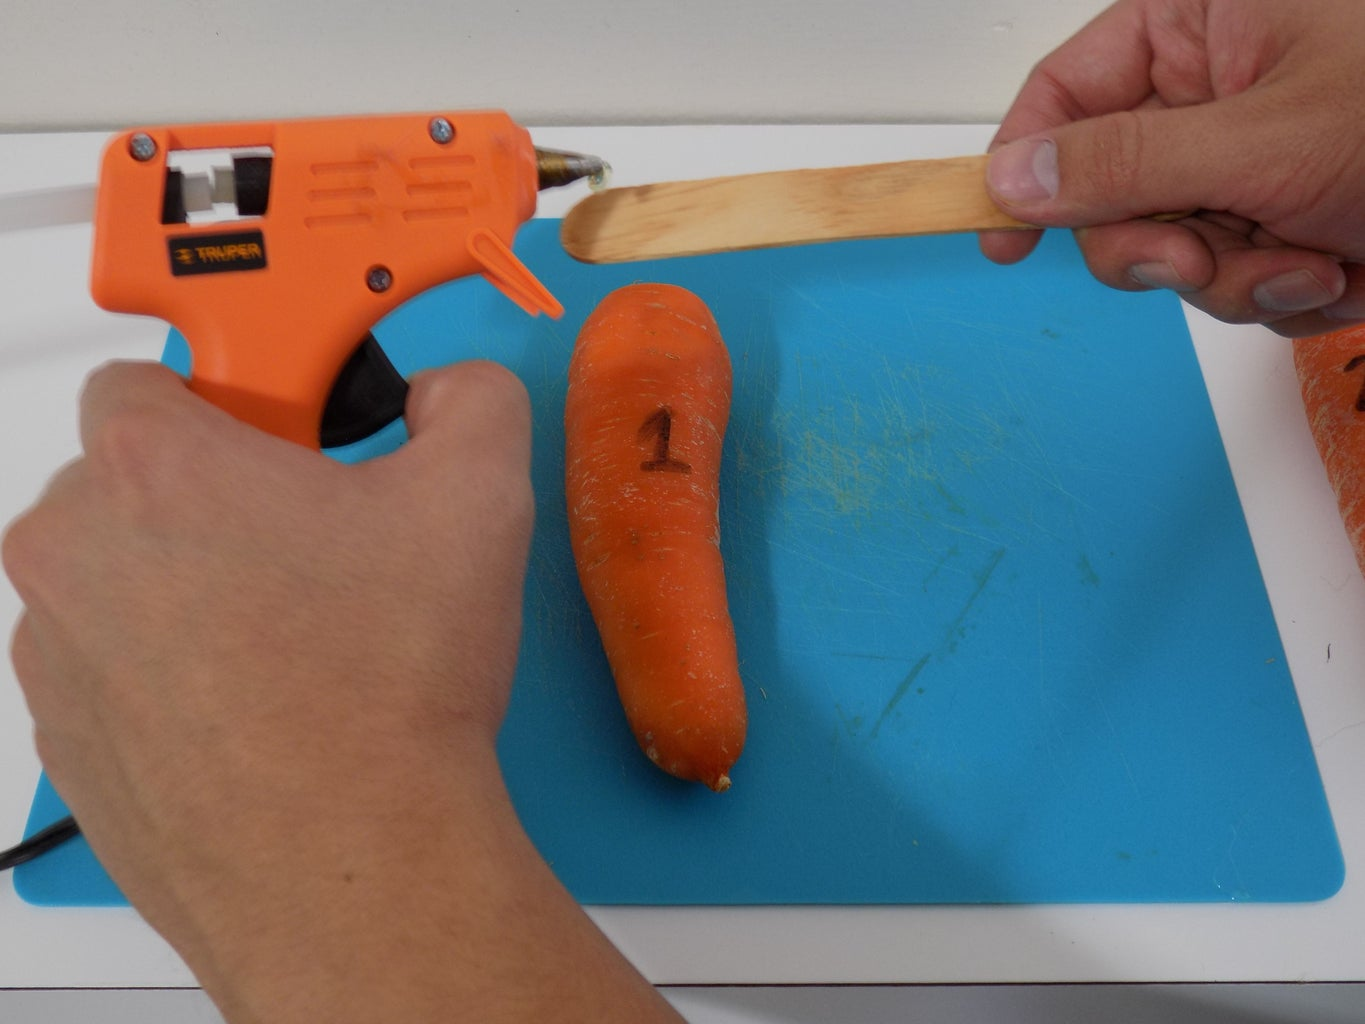 Step 3: Glue and Tight Them Together